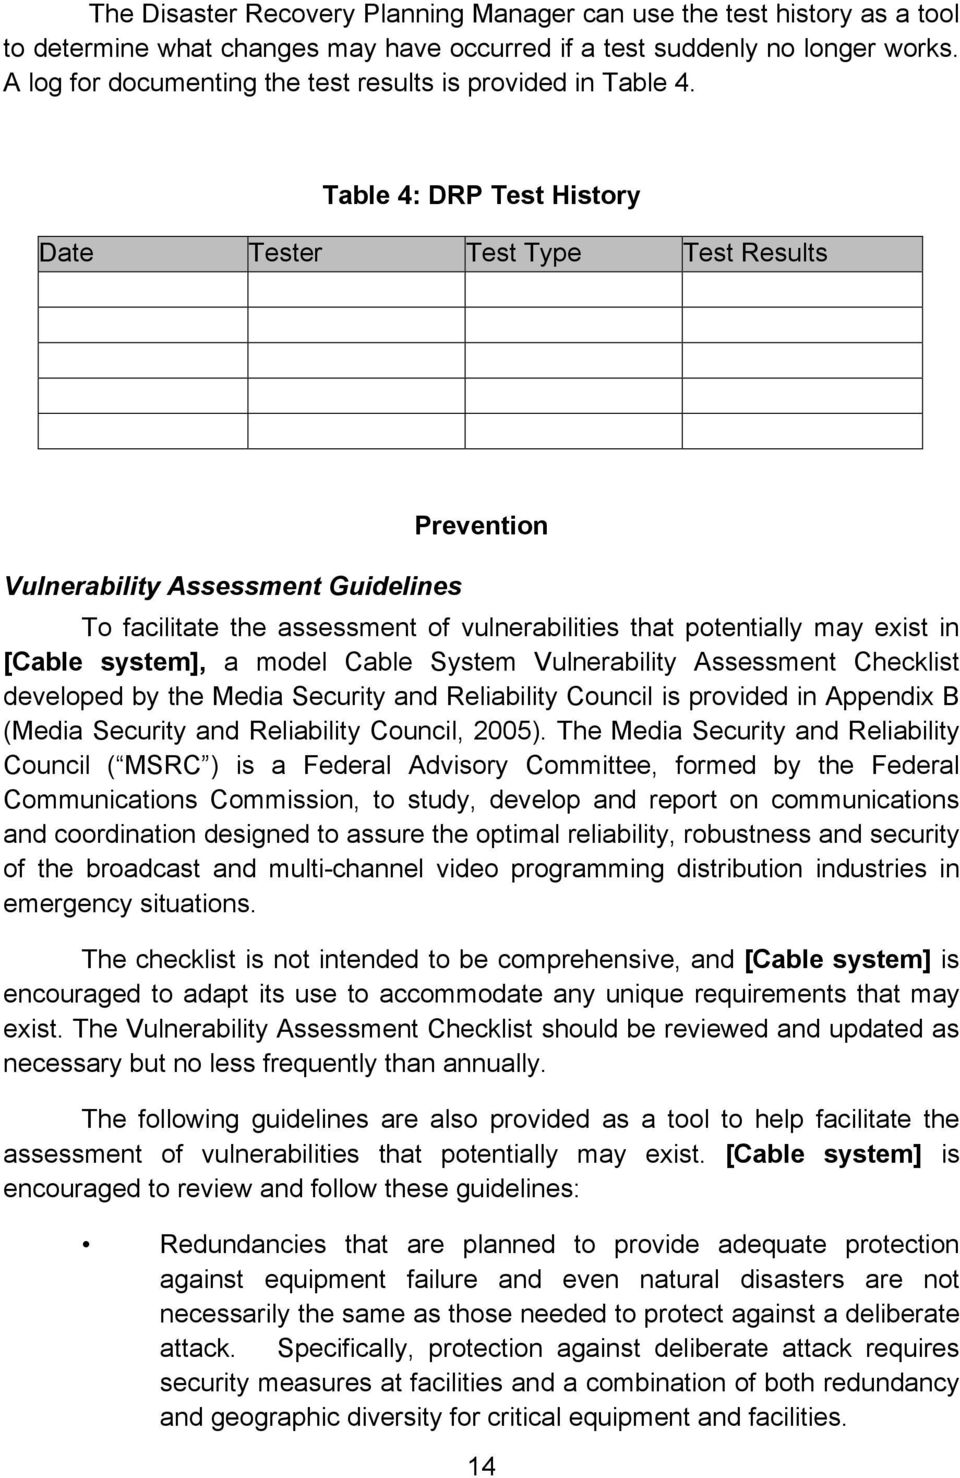 Table 4: DRP Test History Date Tester Test Type Test Results Prevention Vulnerability Assessment Guidelines To facilitate the assessment of vulnerabilities that potentially may exist in [Cable